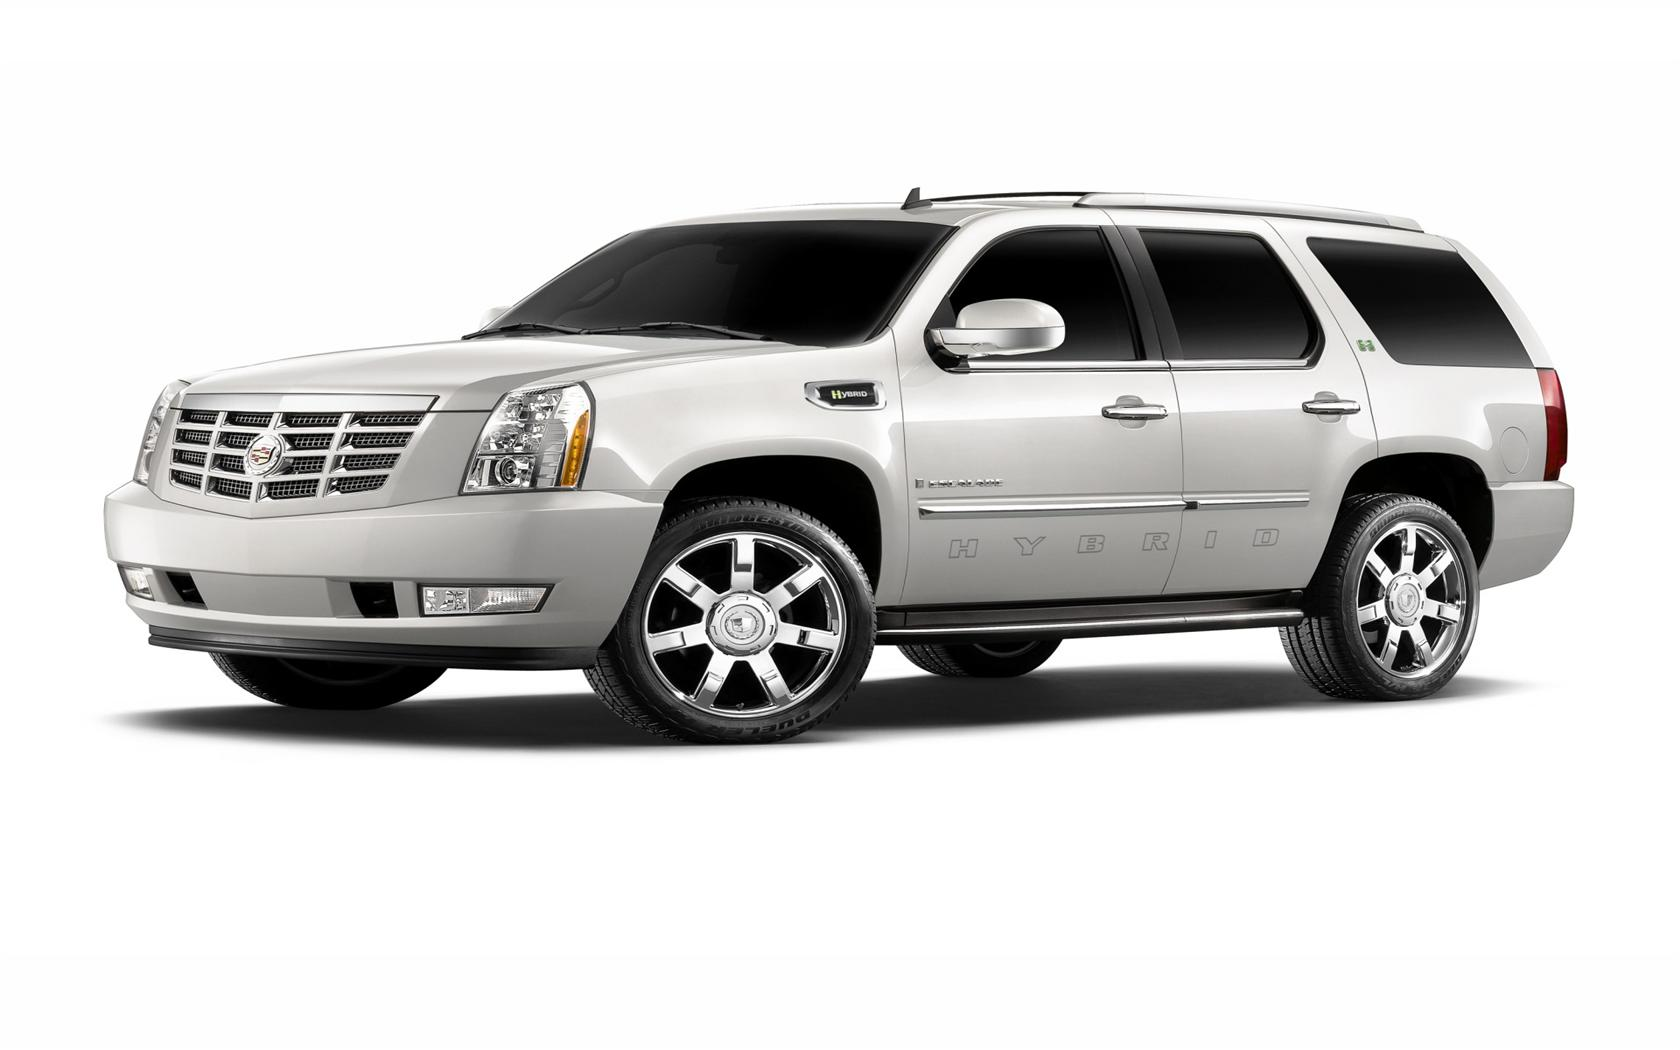 cadillac escalade hybrid images photo 2010 cadillac escalade hybrid. Cars Review. Best American Auto & Cars Review